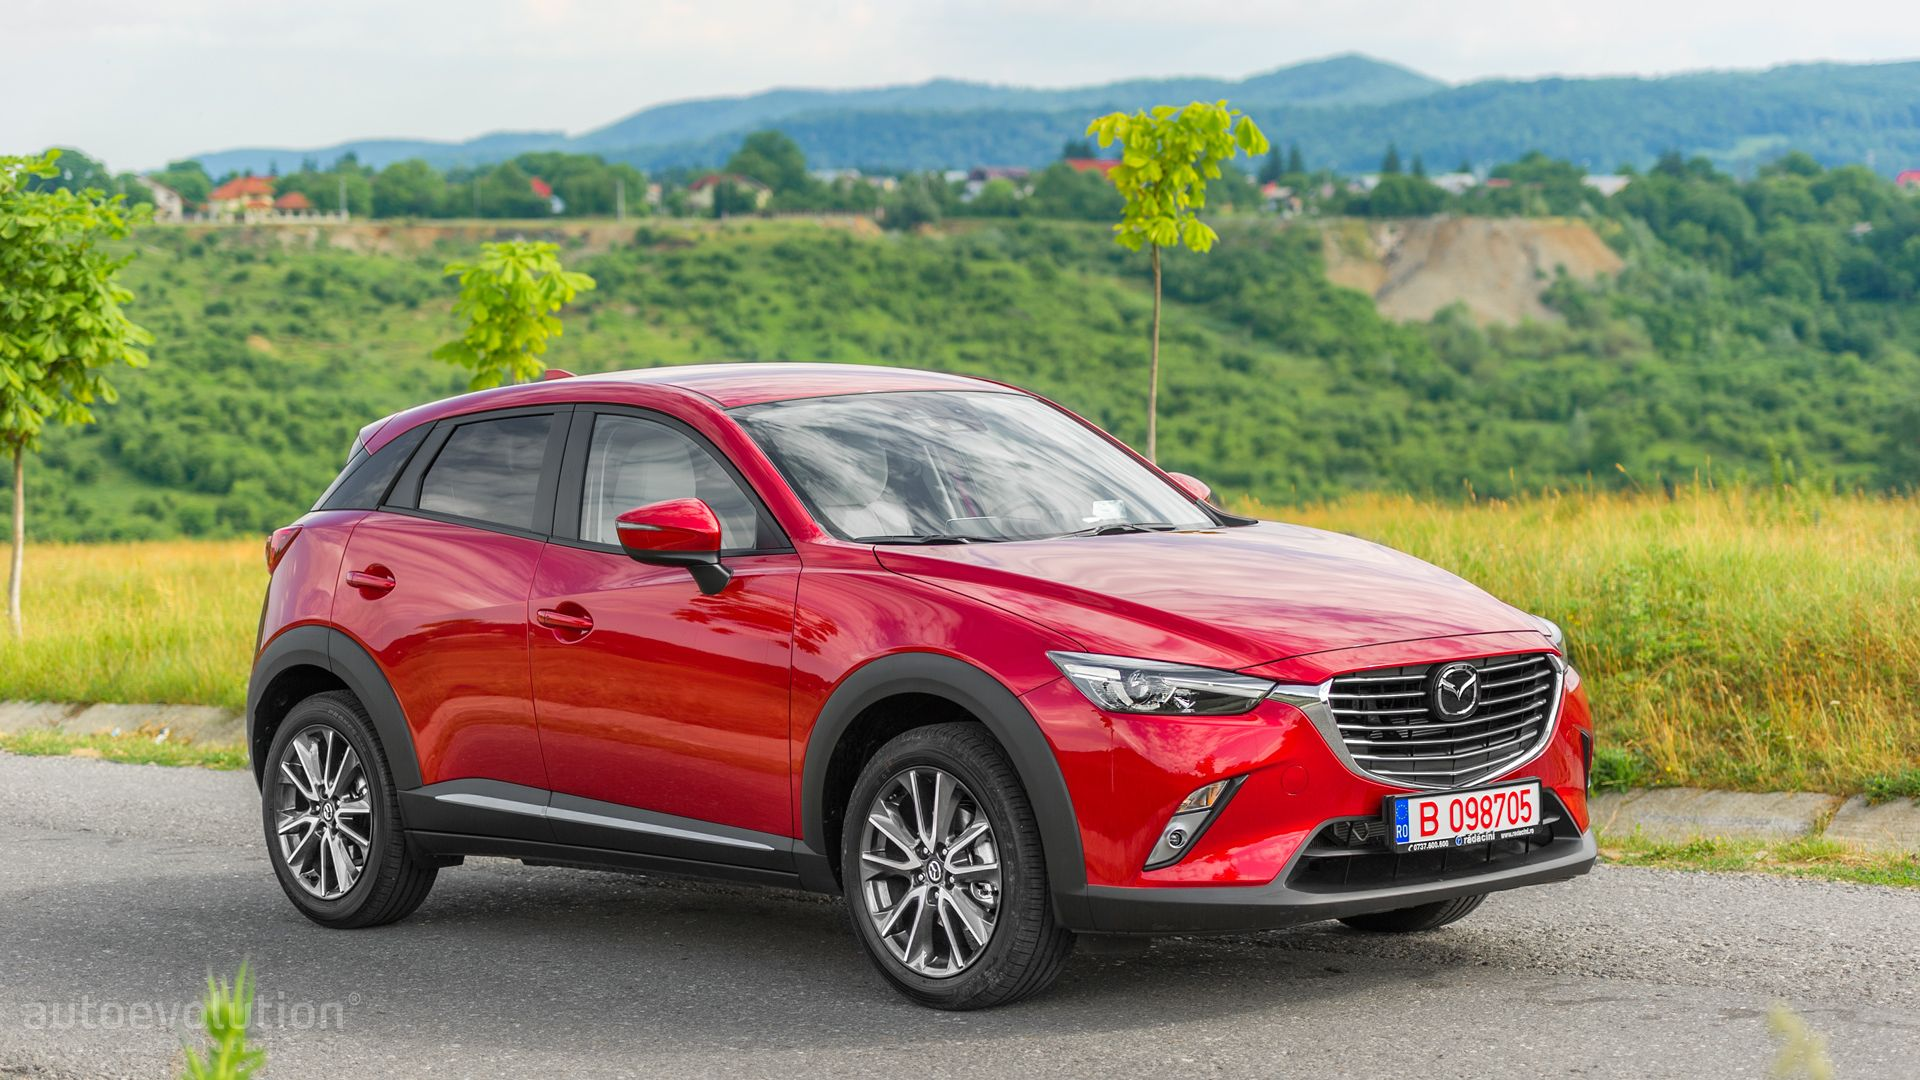 2016 Cx 3 Crossover 6 Photos